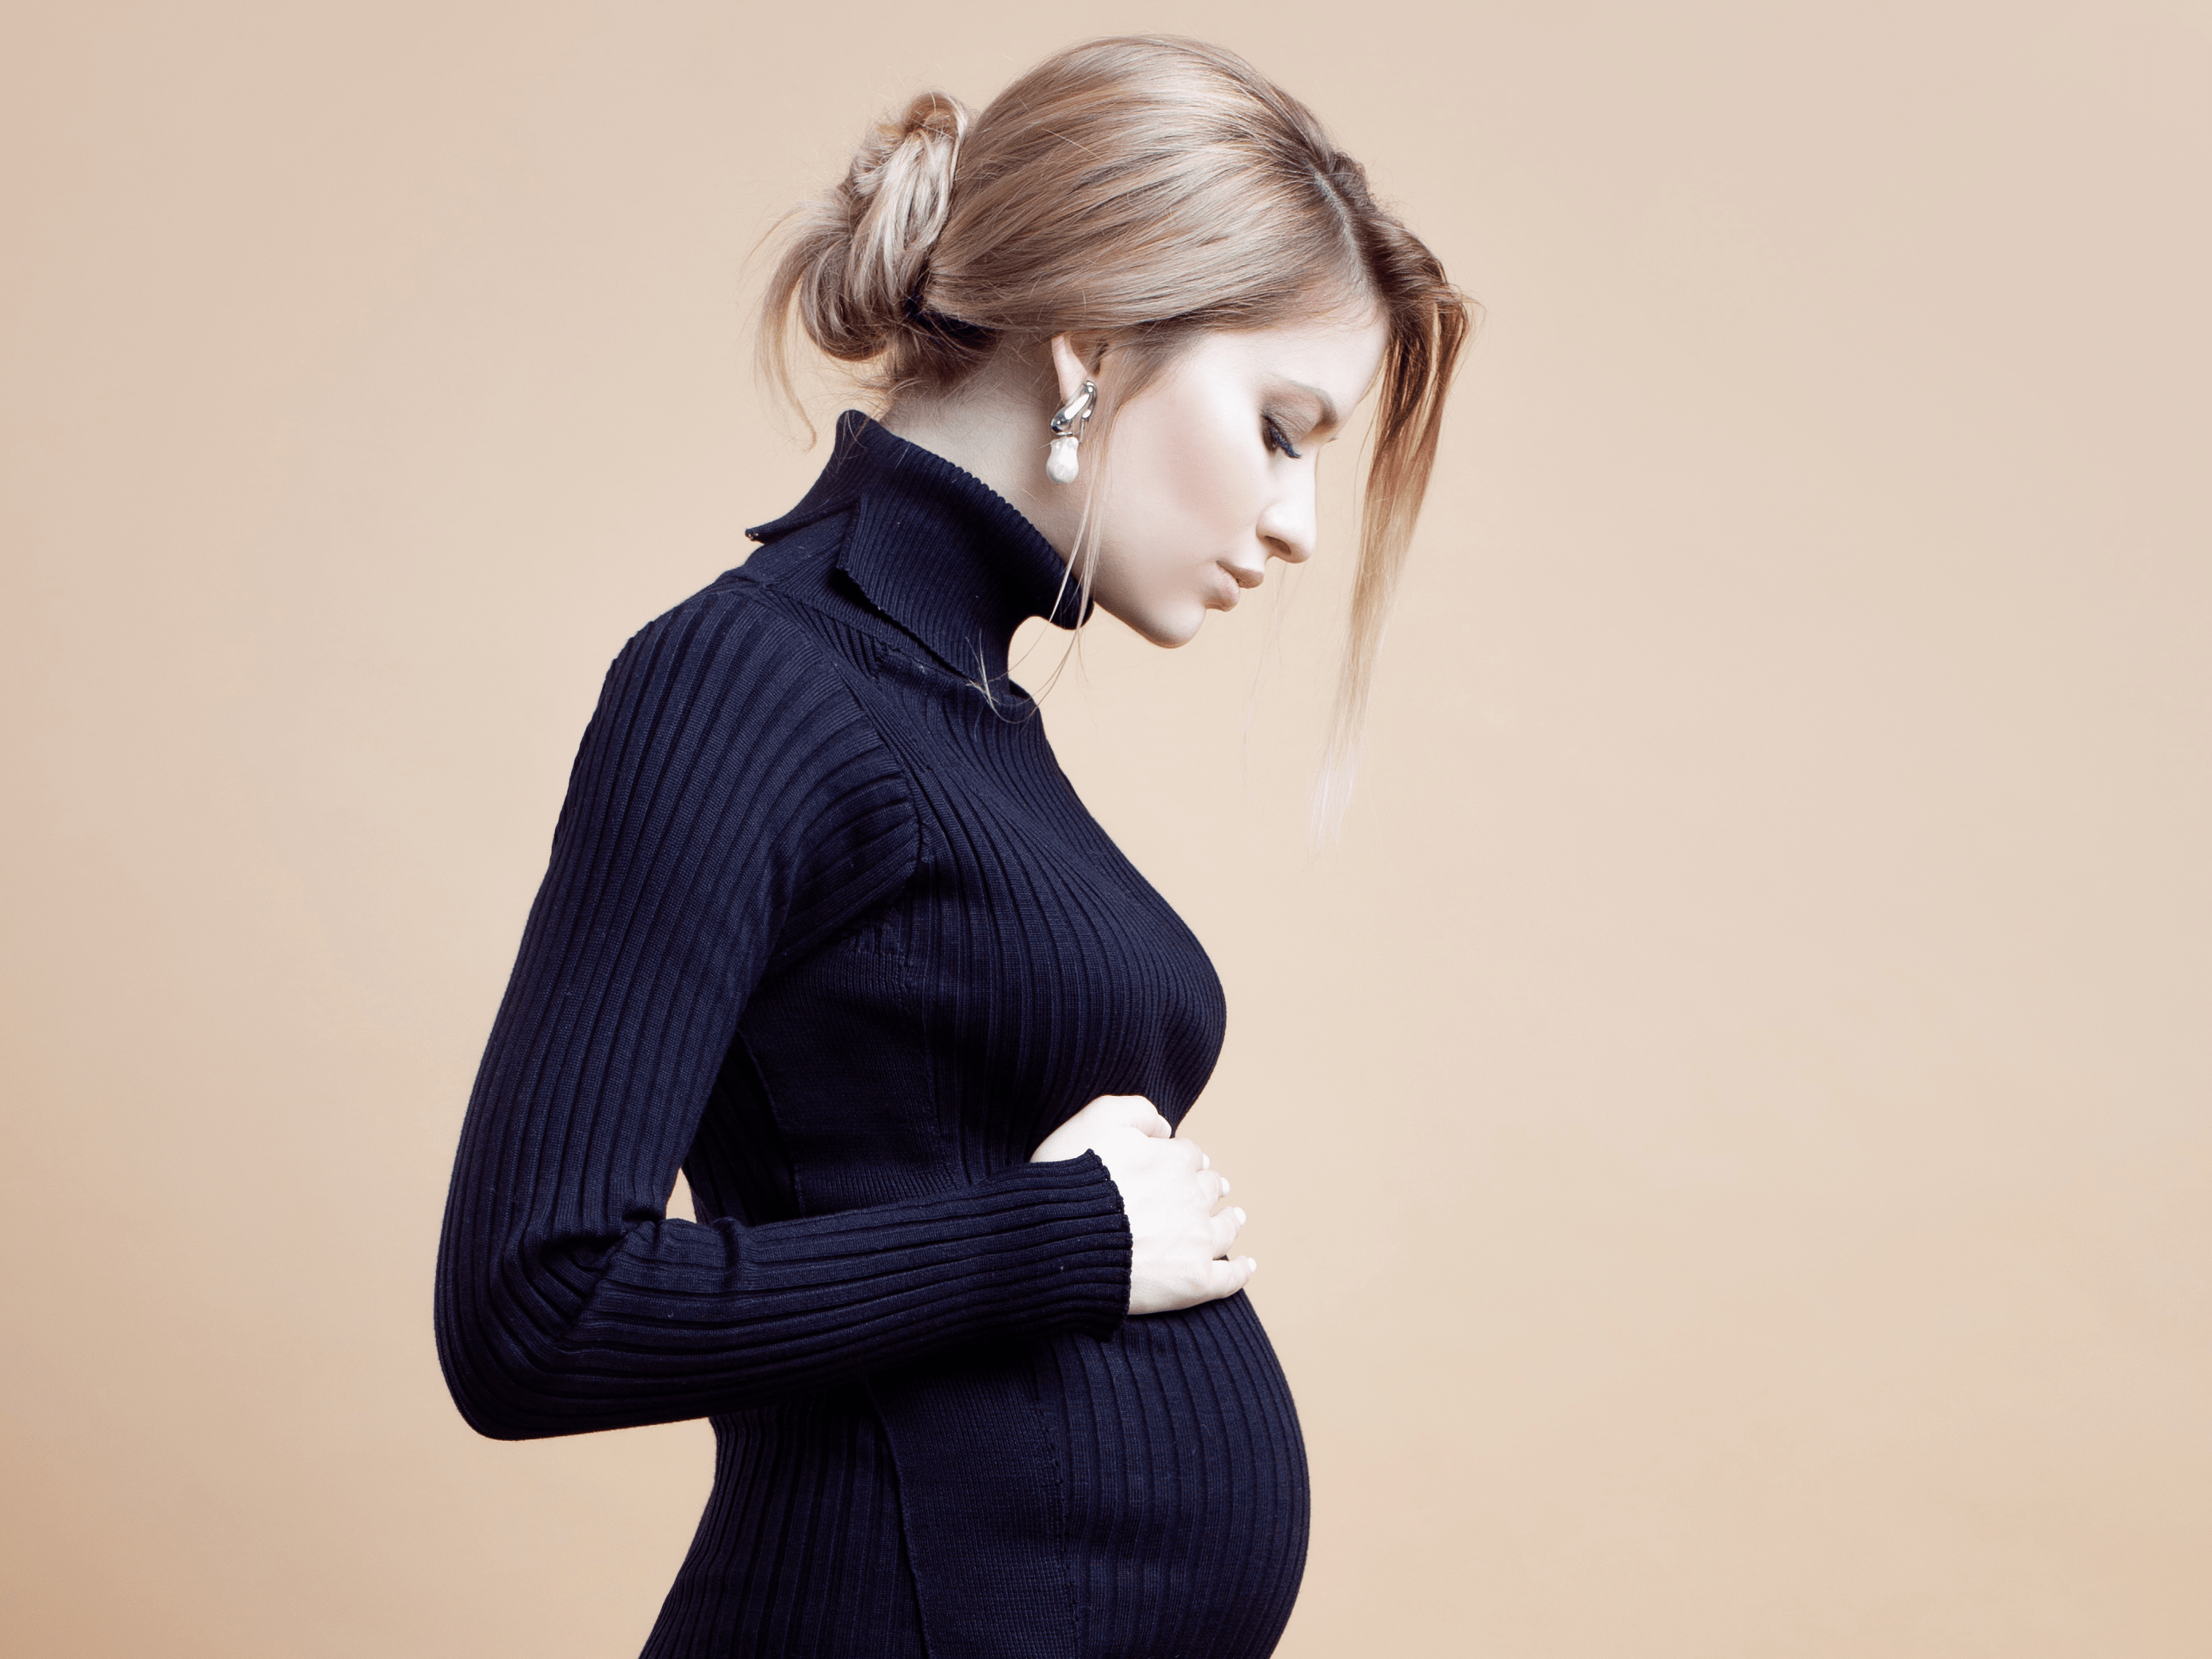 young pregnant woman in dress